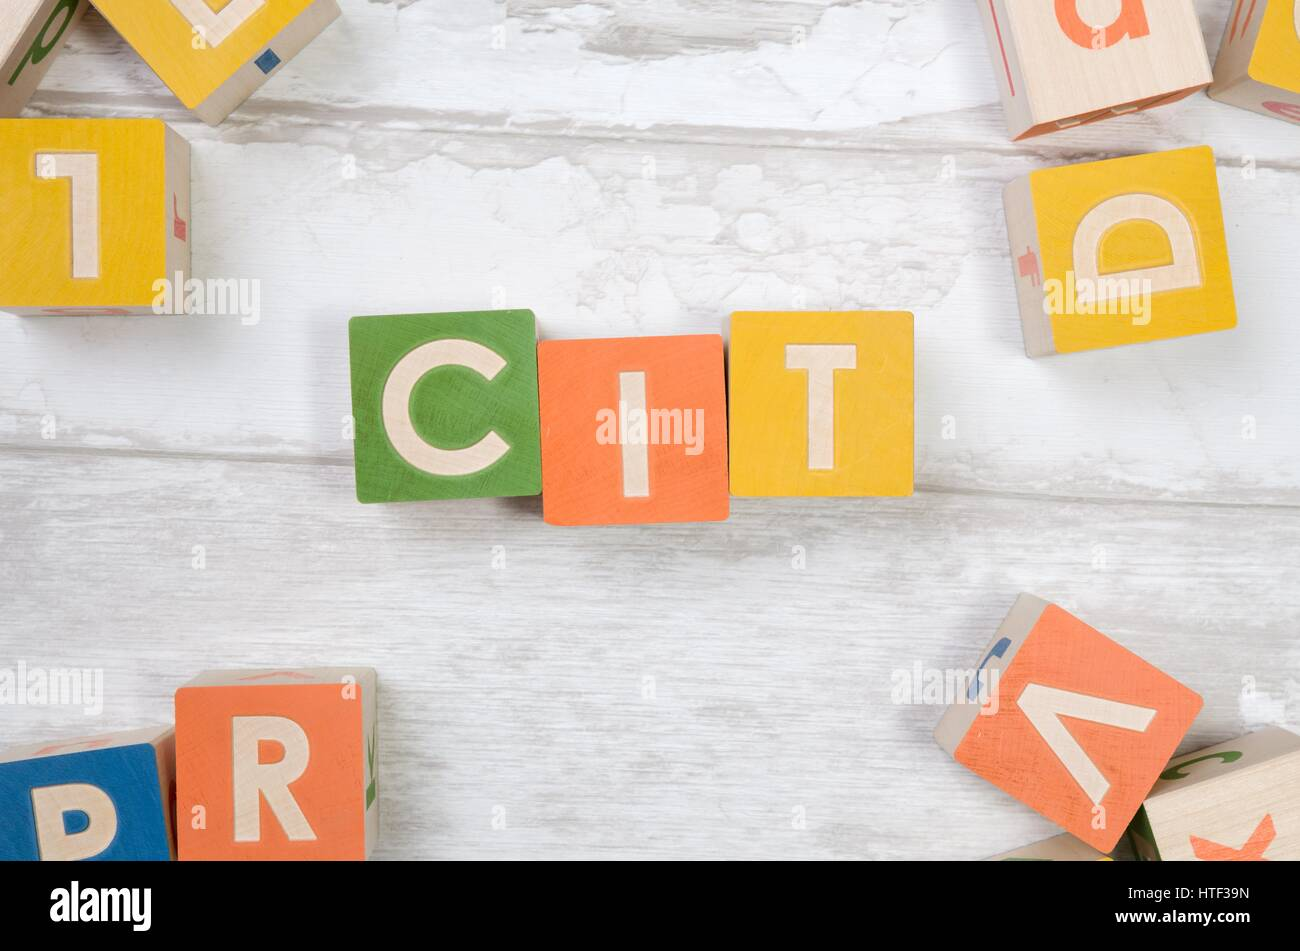 CIT word with colorful blocks. polish tax form money business finance block top view concept - Stock Image